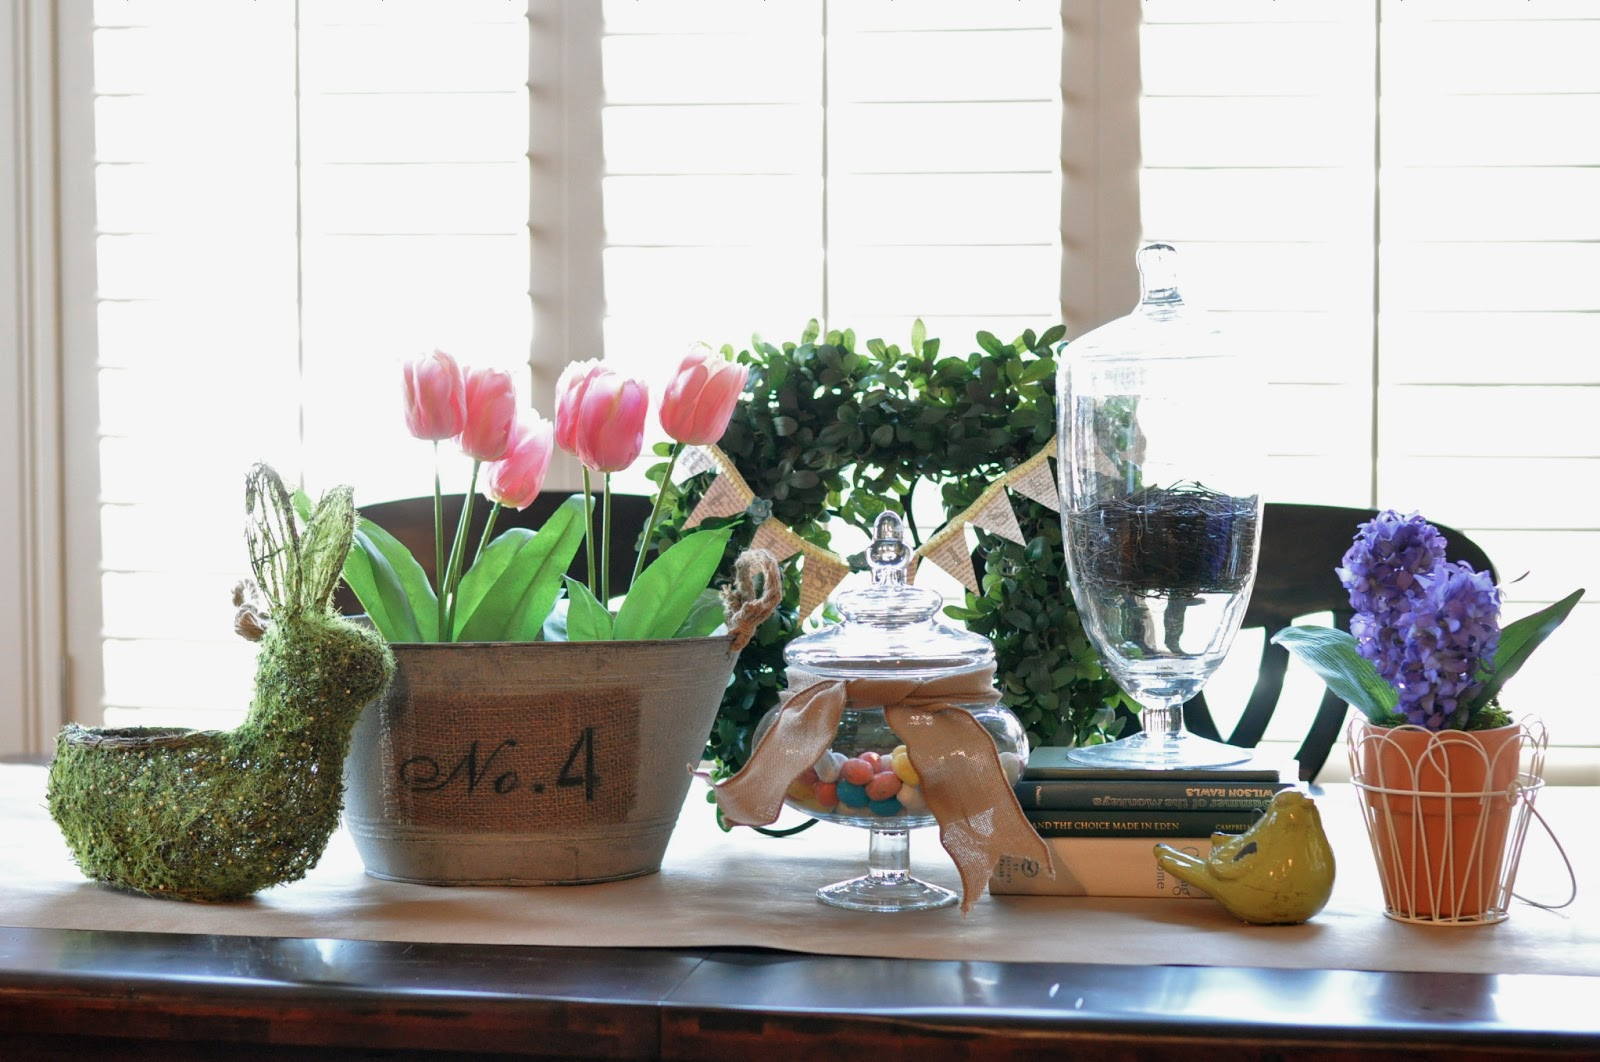 Spring table centerpiece idea and a silhouette double